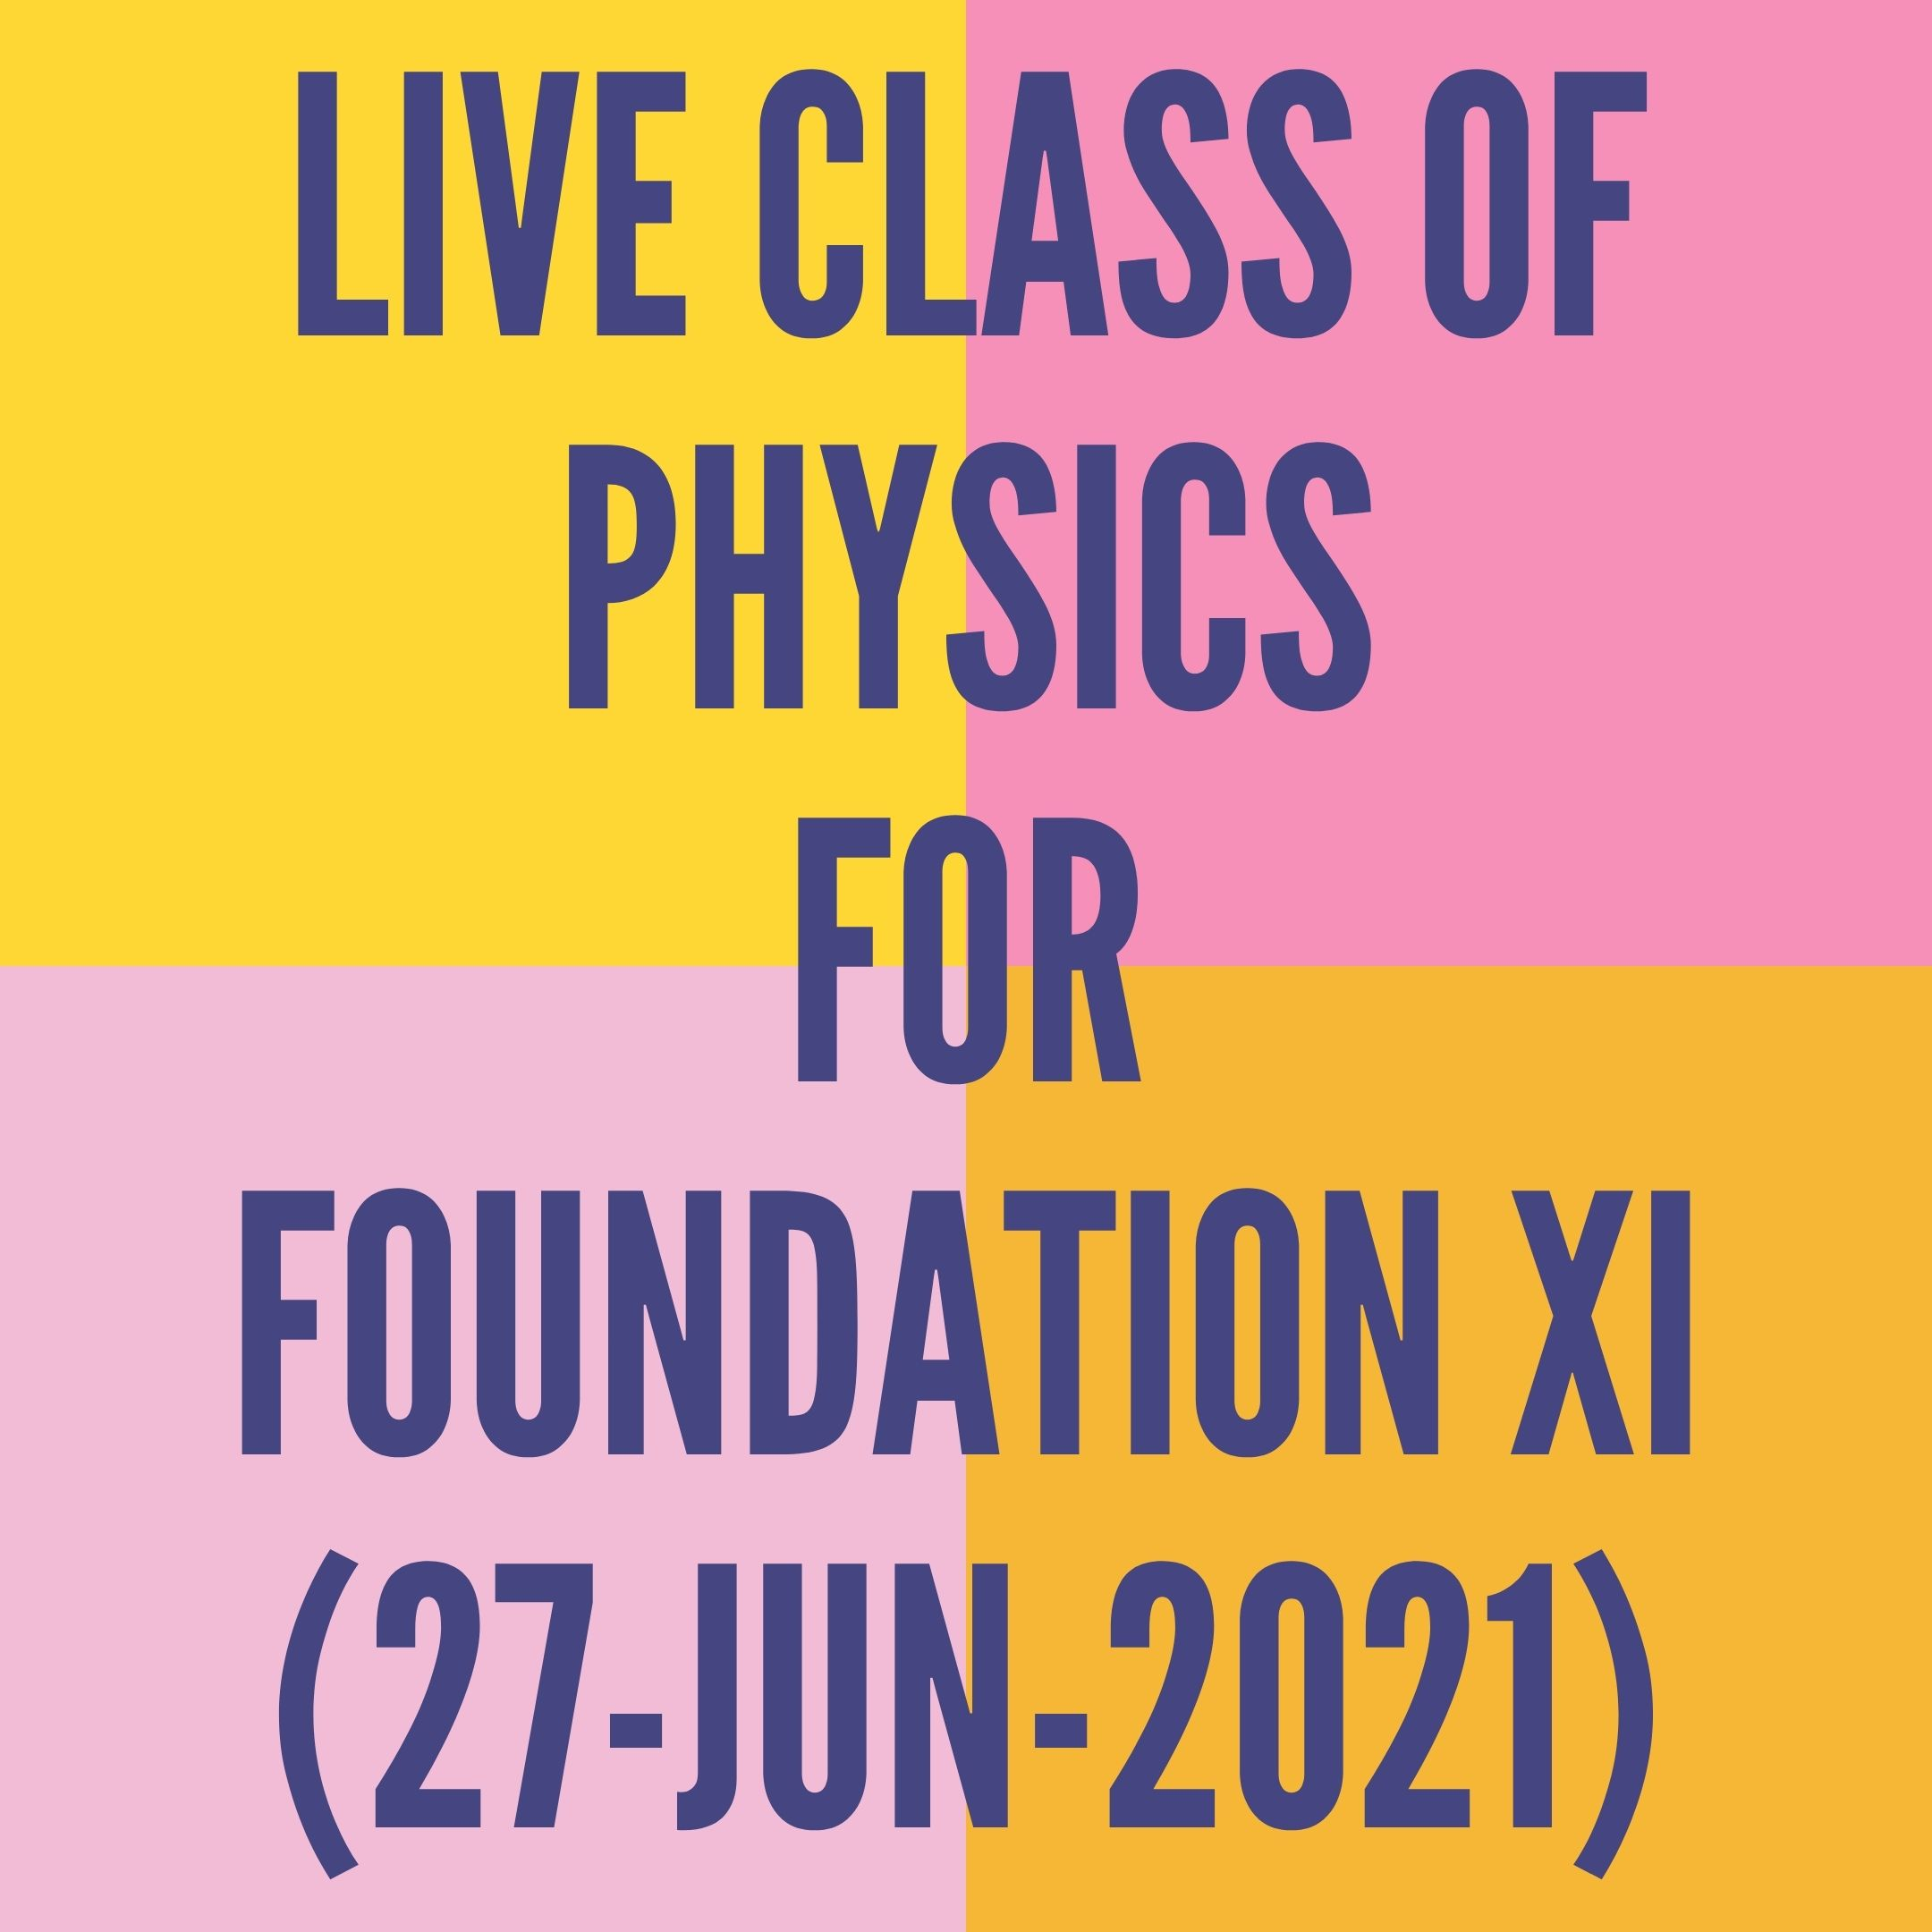 LIVE CLASS OF PHYSICS FOR FOUNDATION XI (27-JUN-2021) APPLIED MATHS